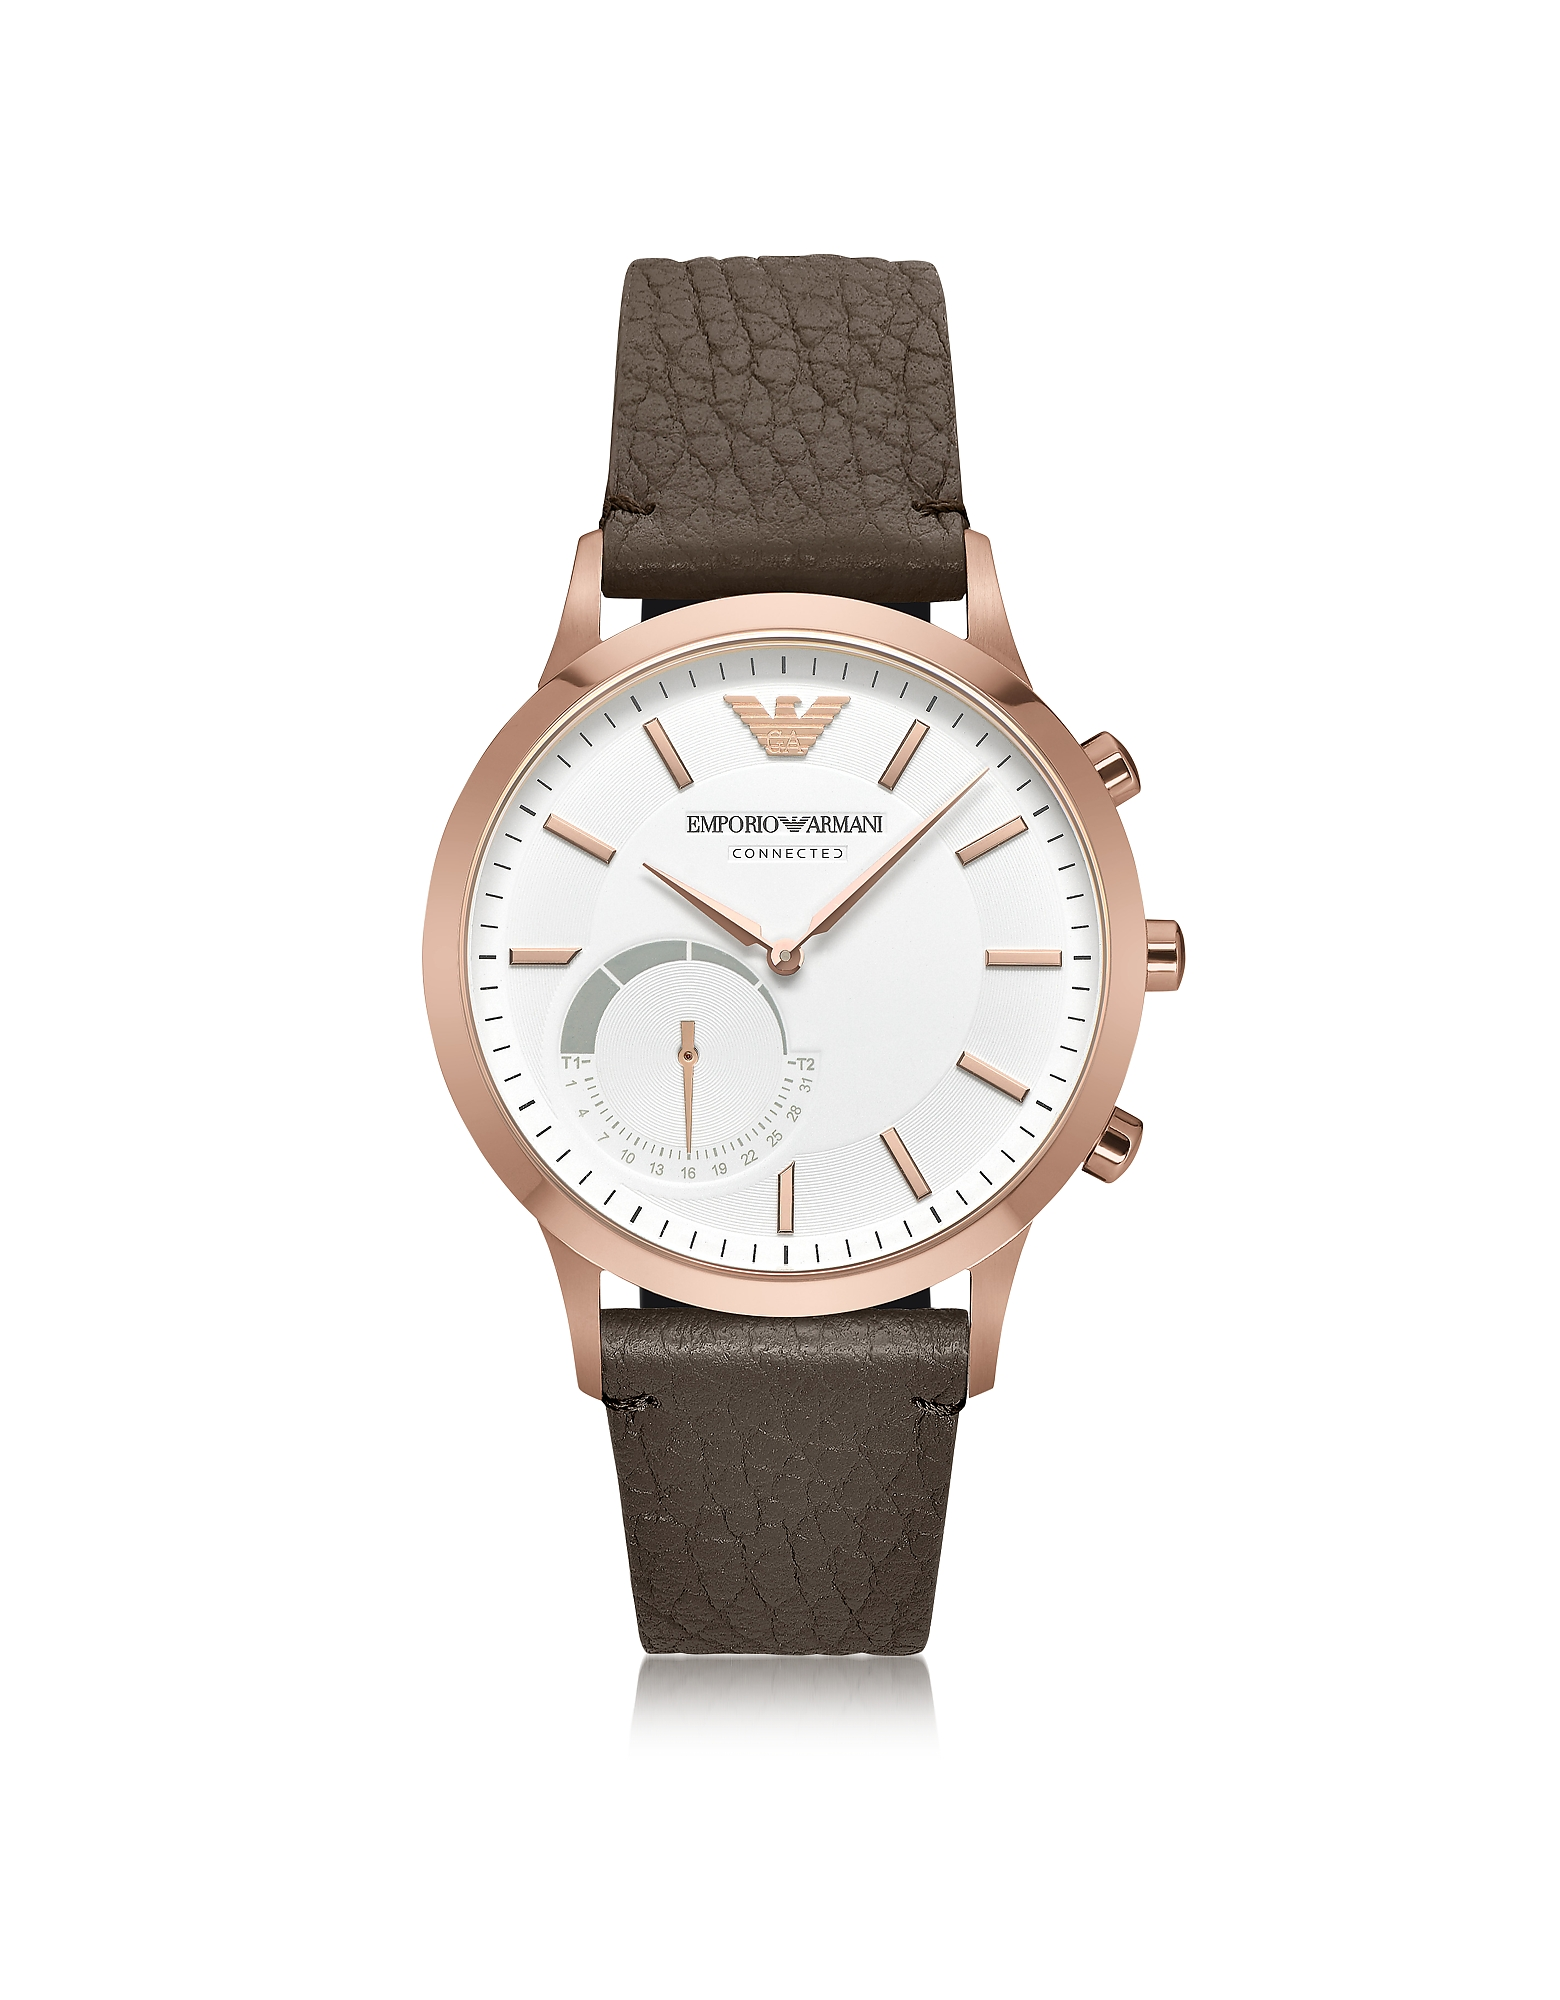 Emporio Armani Men's Watches, Connected Rose Gold-Tone PVD Stainless Steel Hybrid Men's Smartwatch w